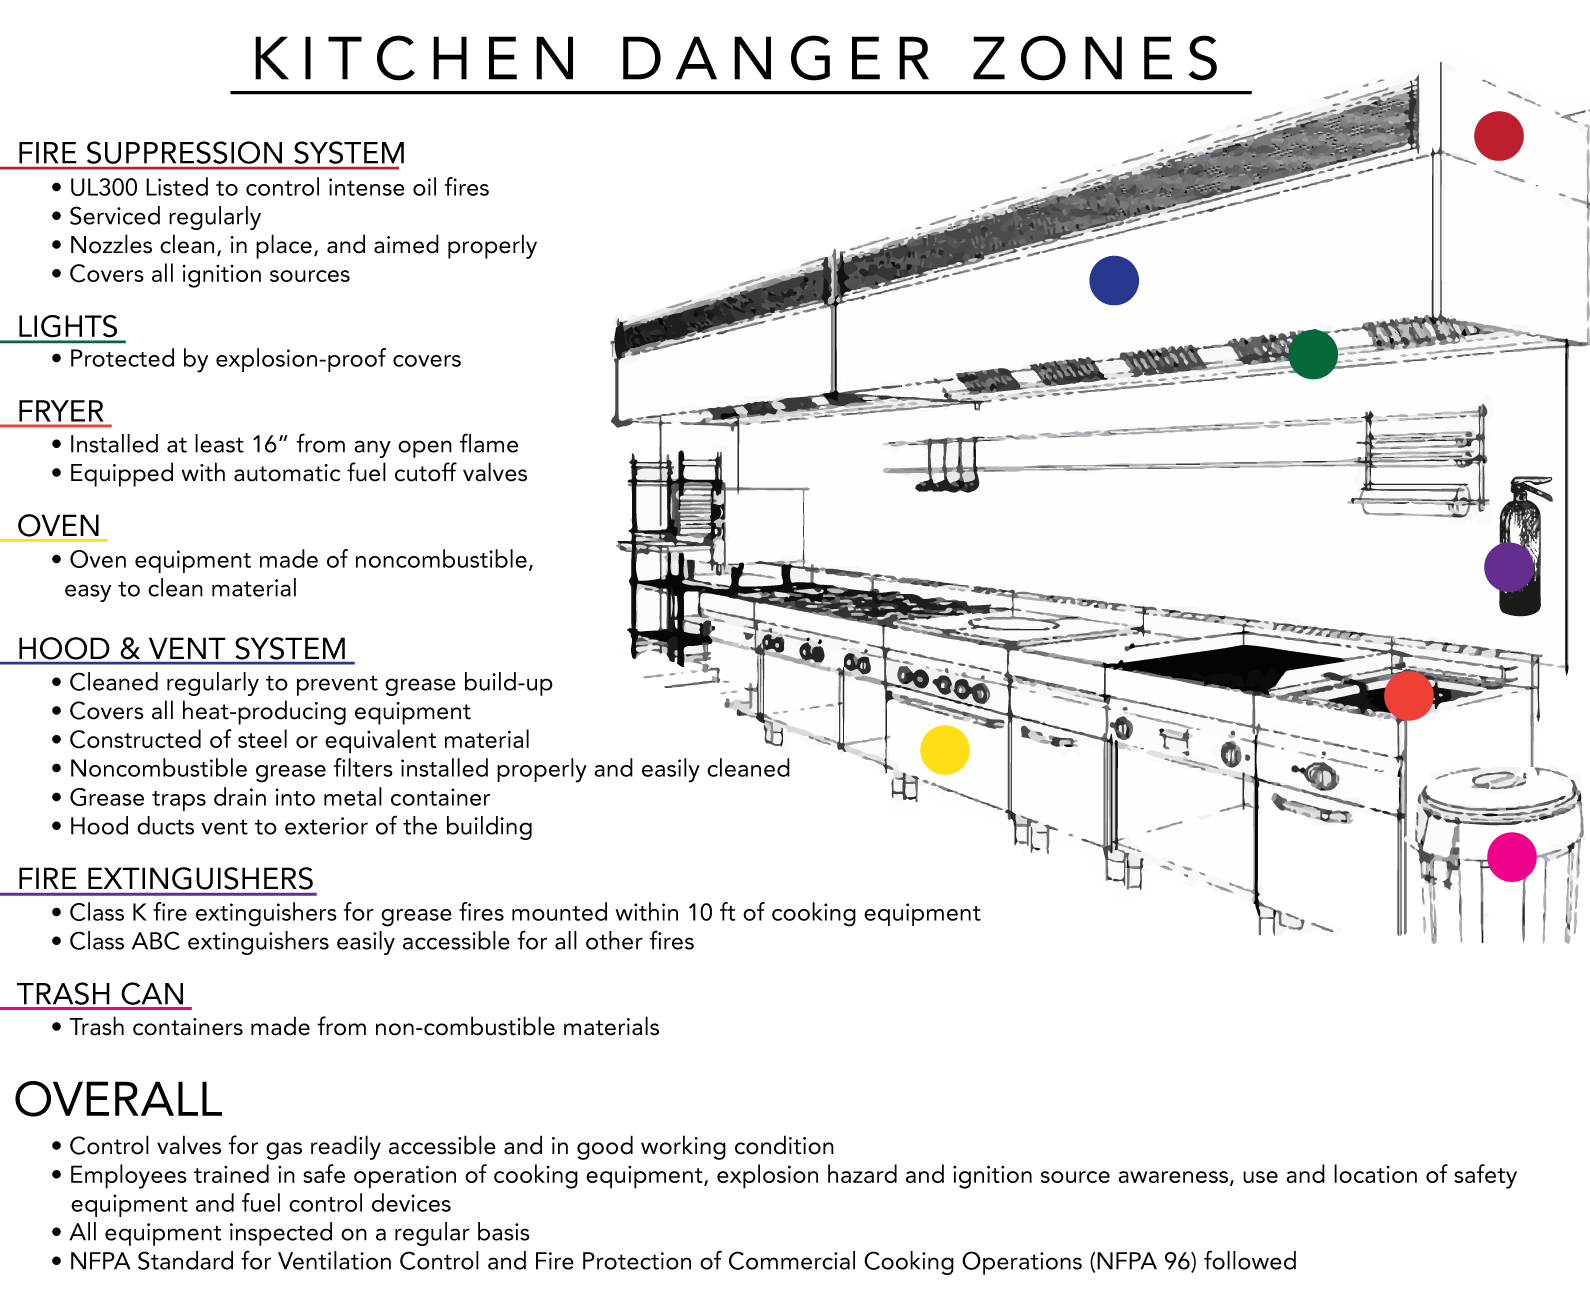 Fire Hazards in Commercial Kitchens | Atlantic Training Blog